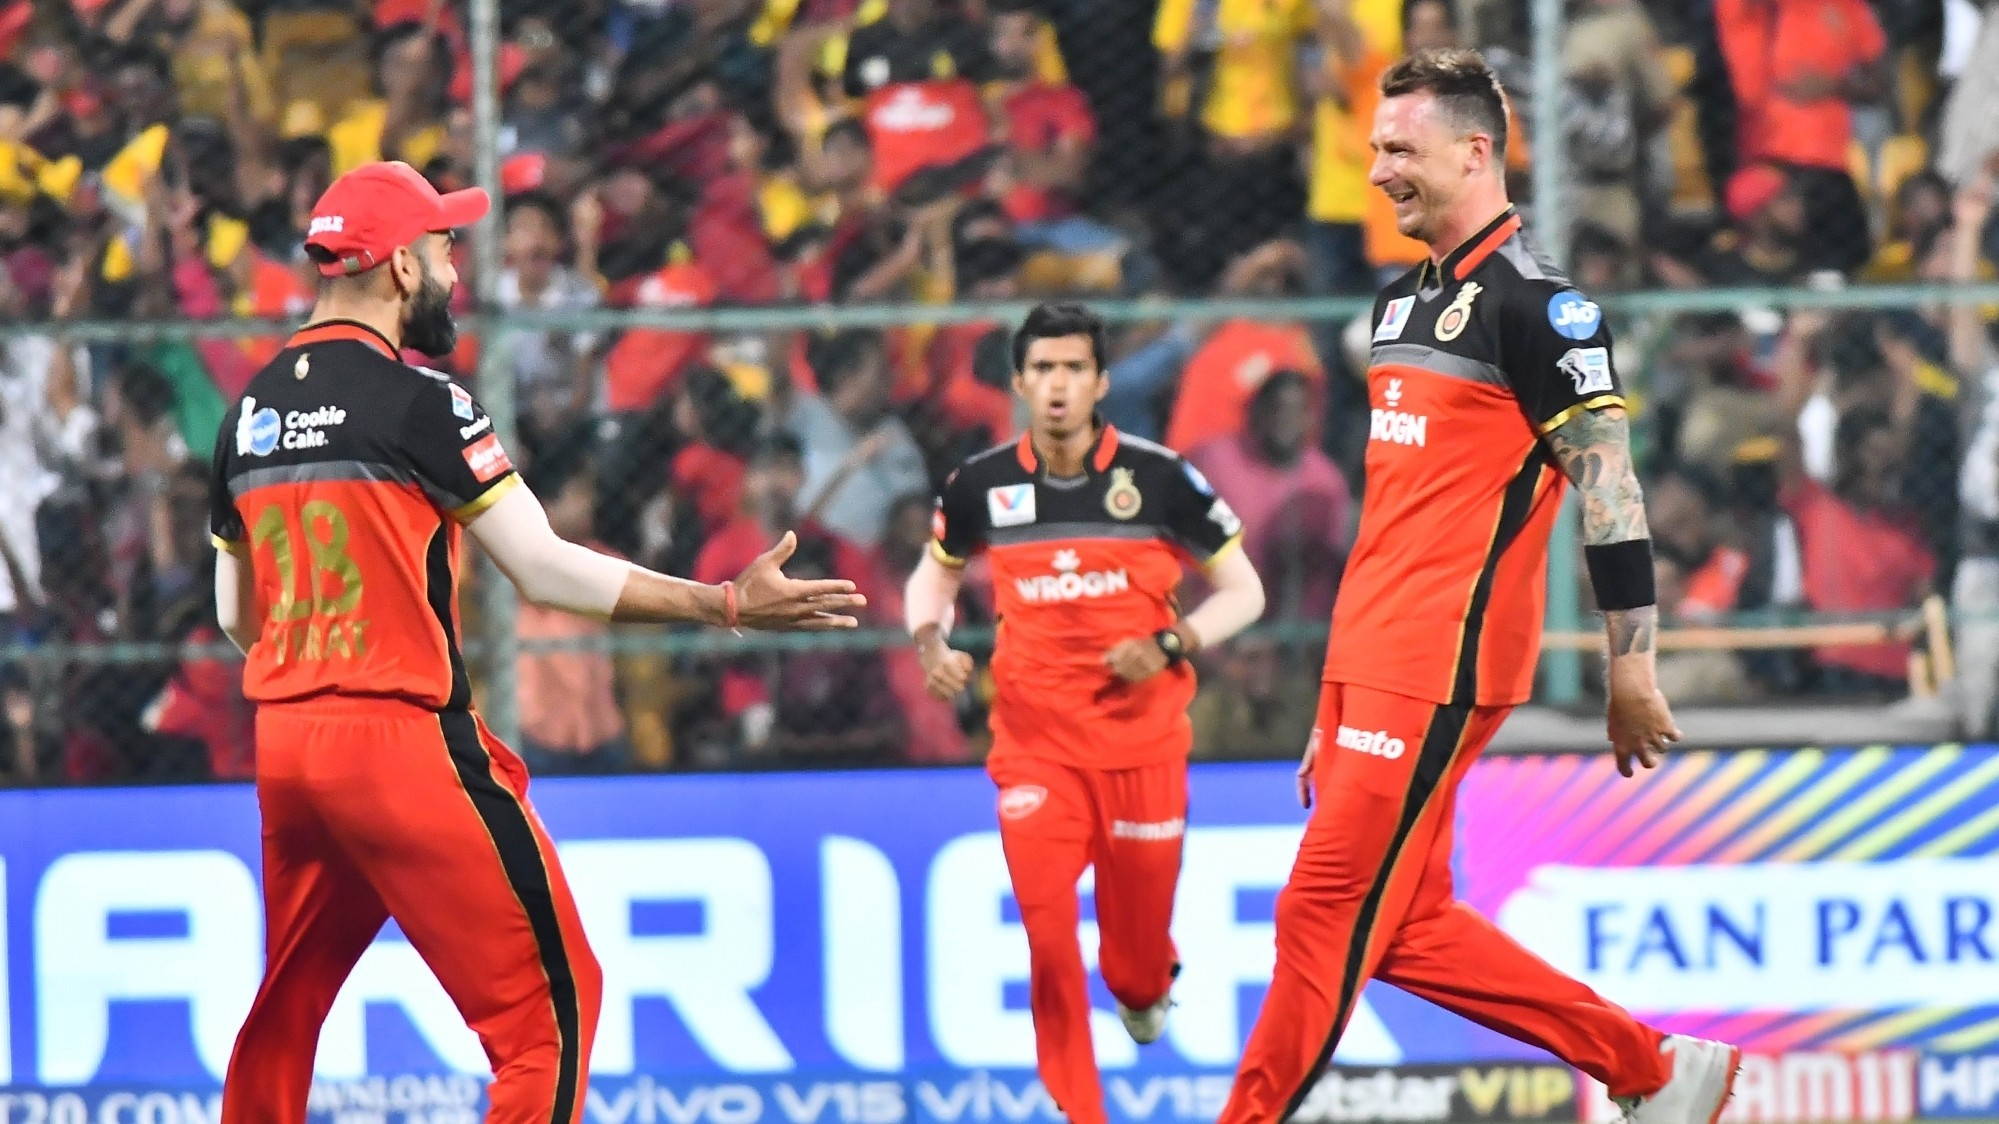 IPL 2019: RCB dealt a huge blow as Dale Steyn ruled out of tournament with shoulder injury